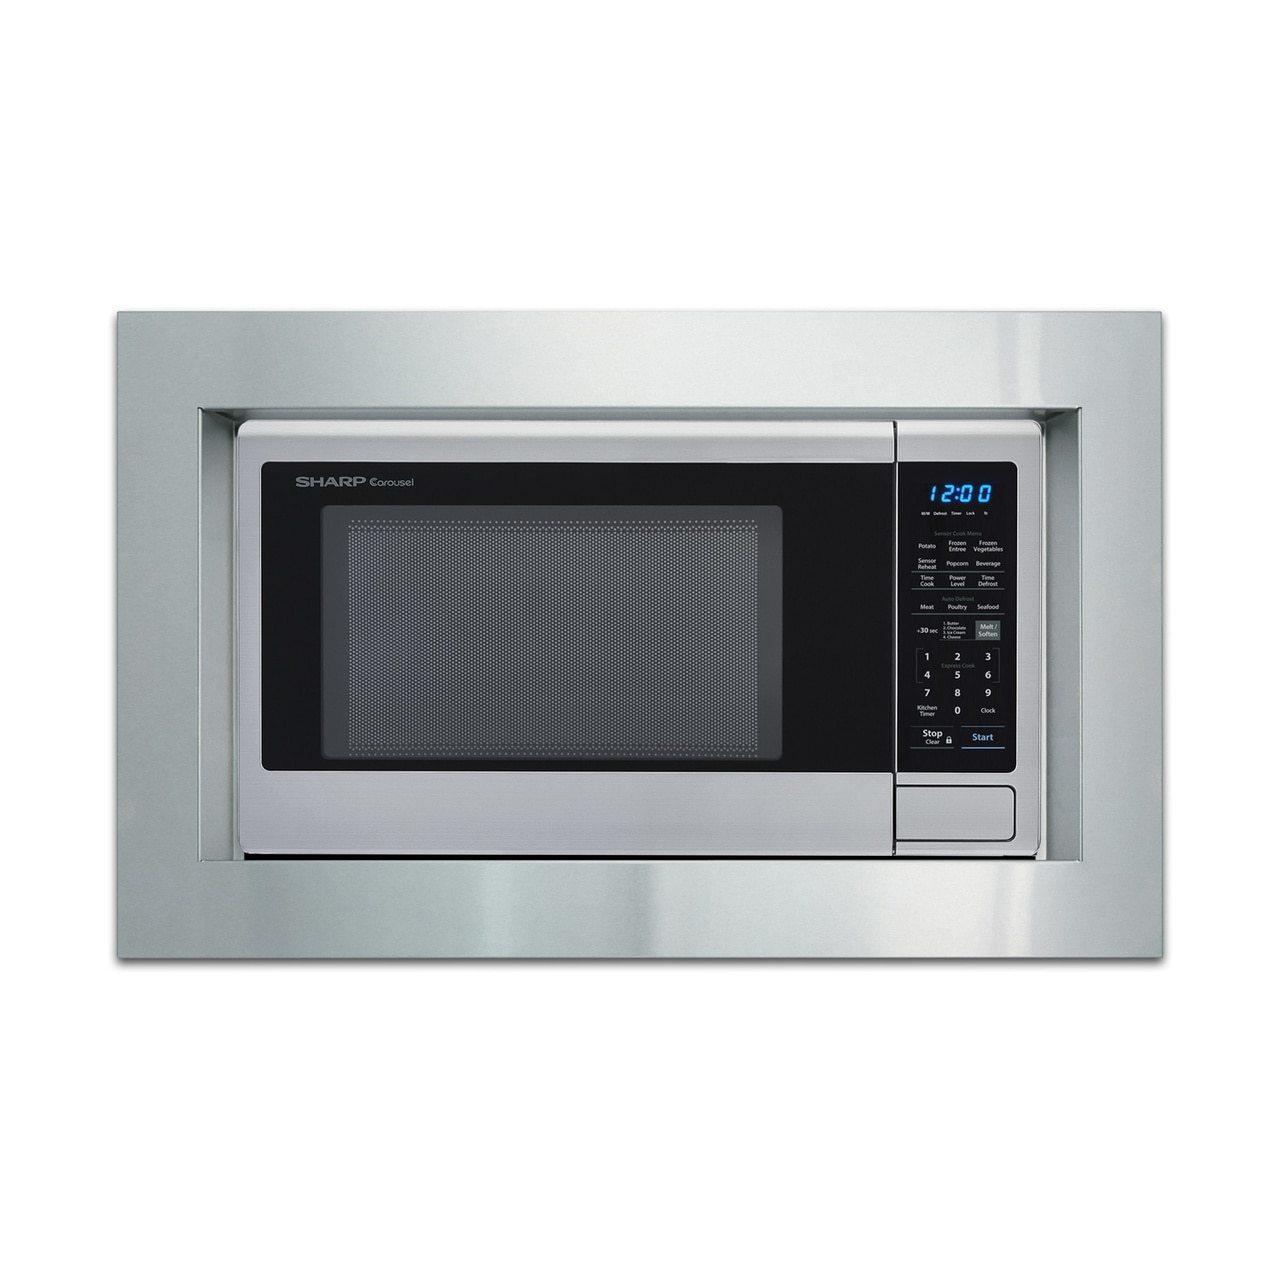 Sharp 30 in. Built-in Microwave Oven Trim Kit